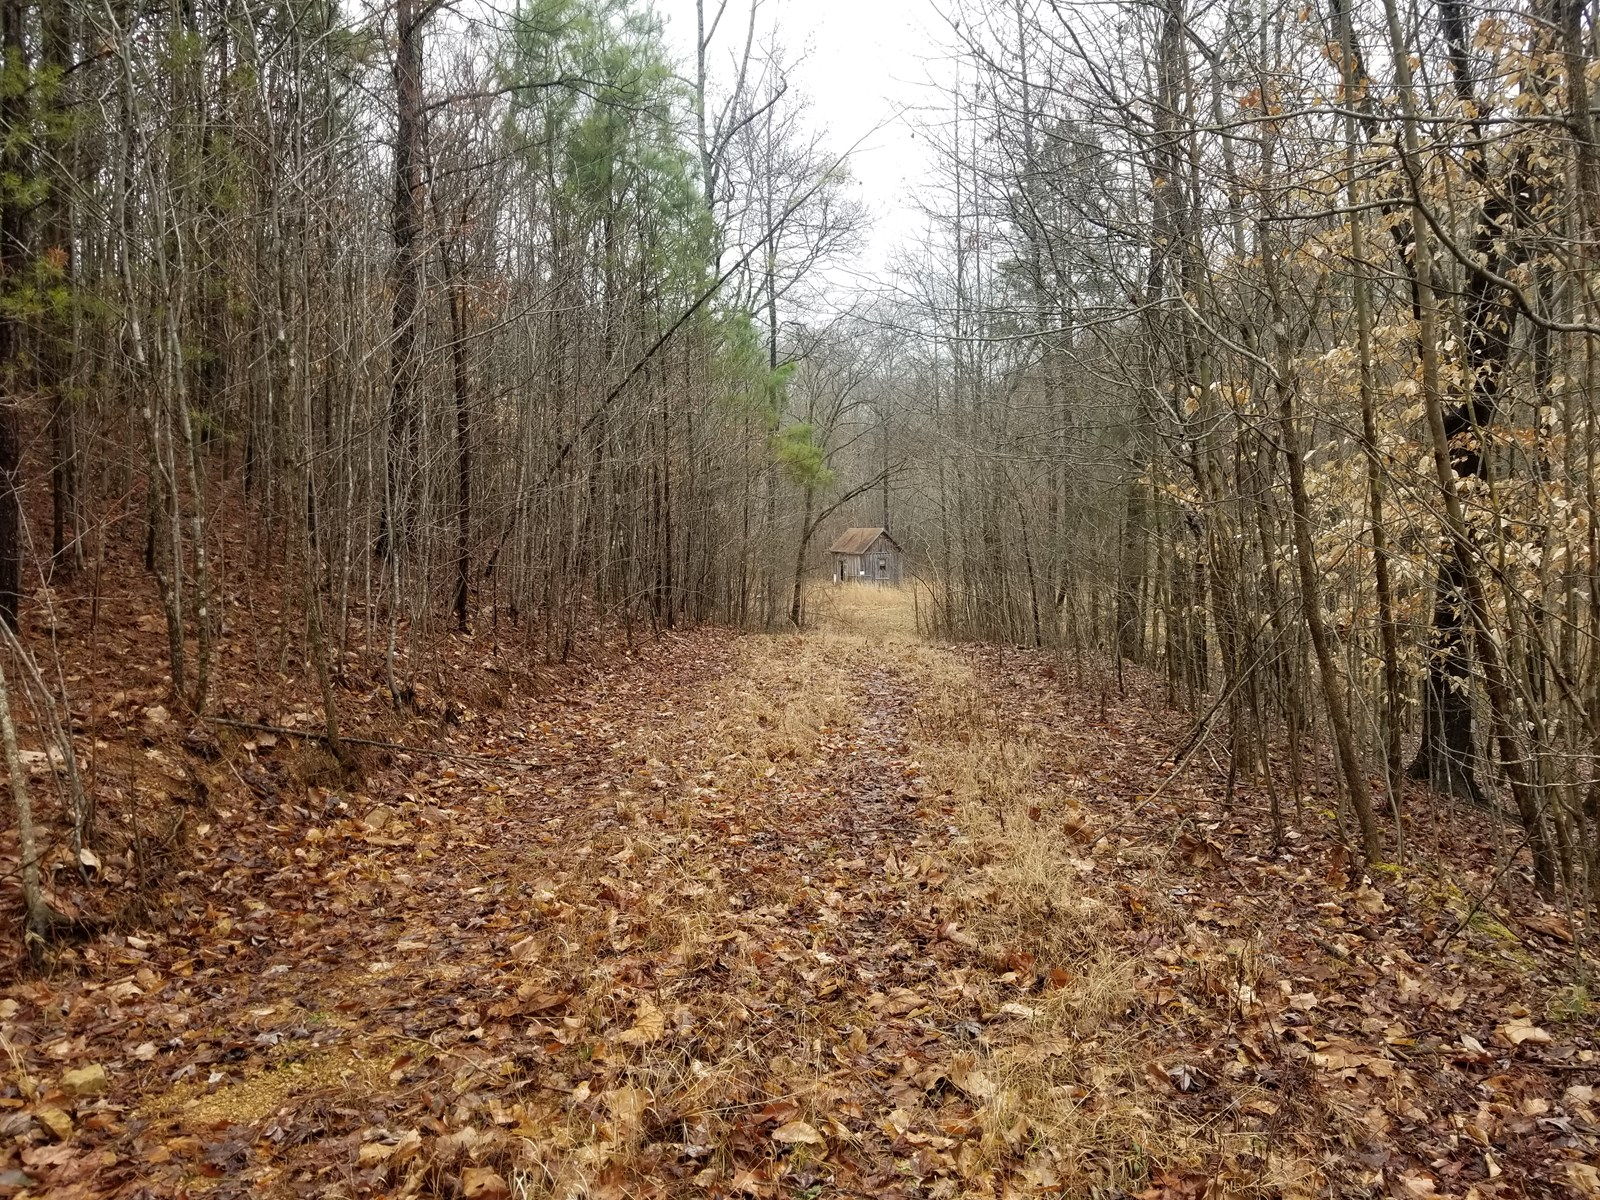 29 ACRE COLLINWOOD TN LAND FOR SALE CREEK SPRING WELL CABIN